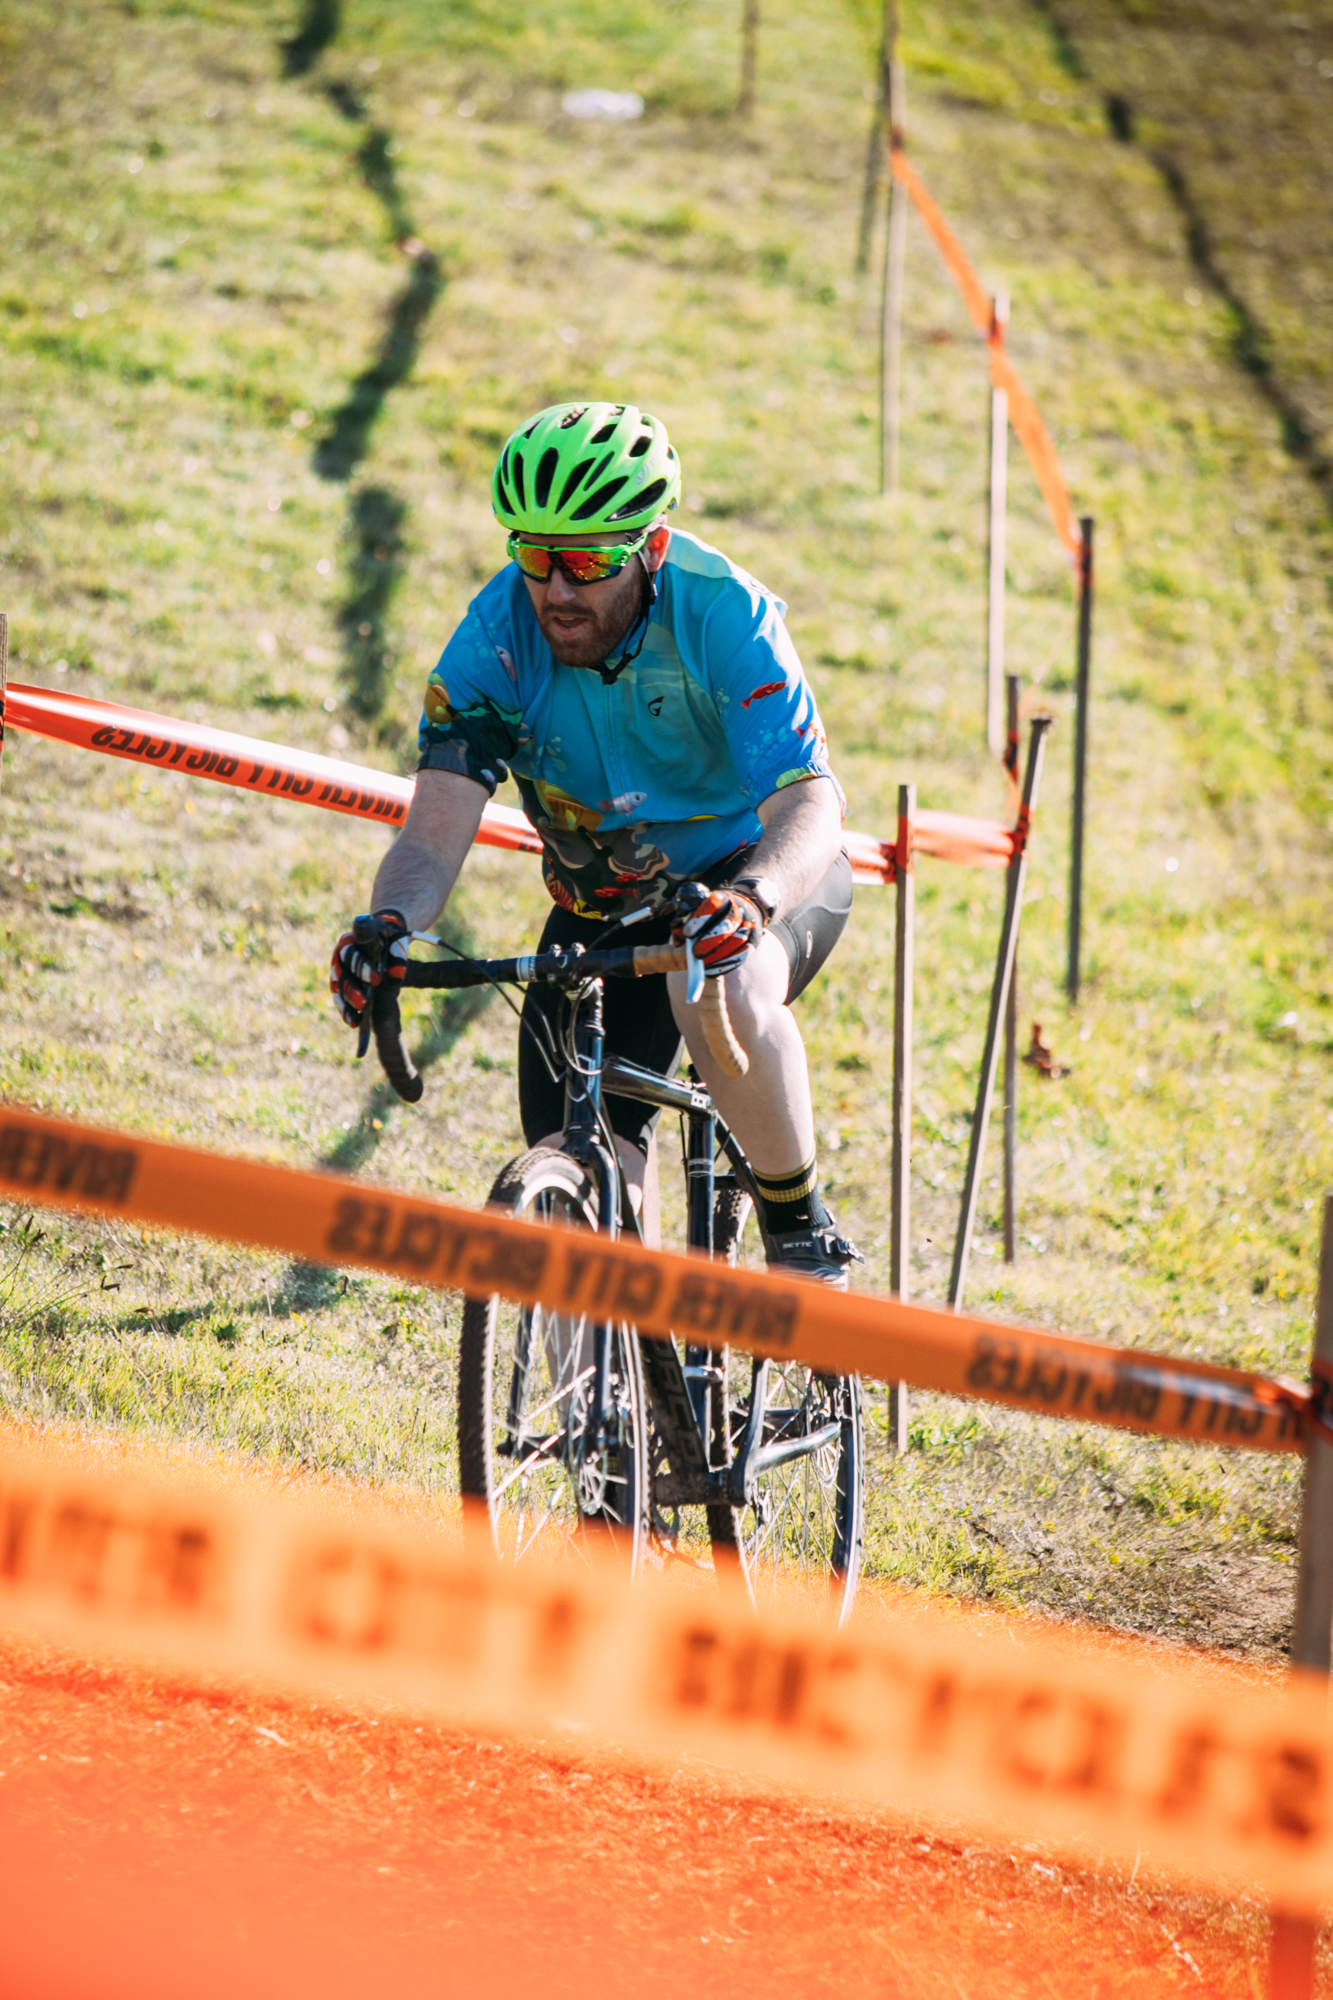 Cyclocross18_CCCX_RainierHS-6-mettlecycling.jpg